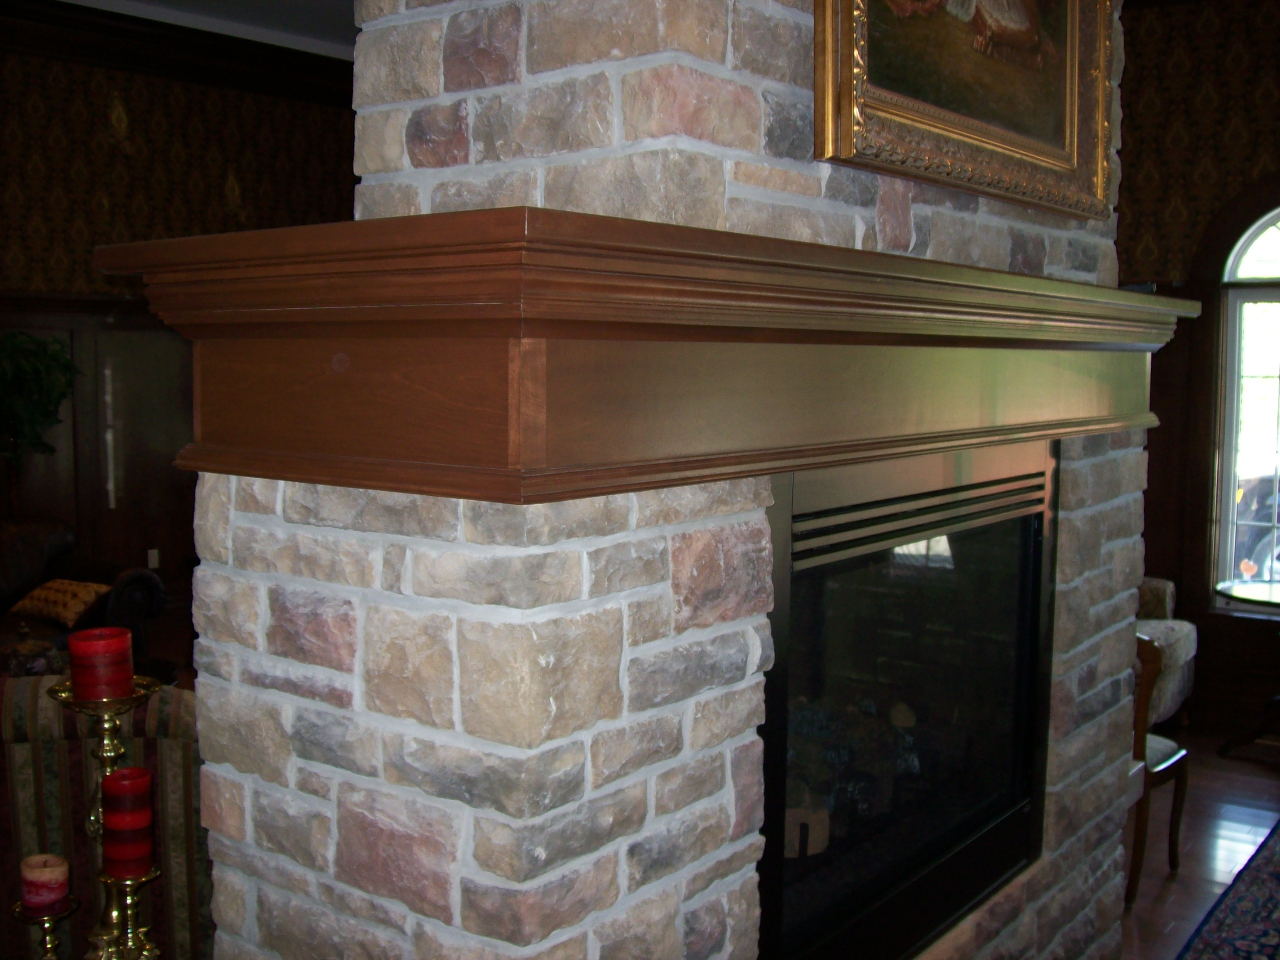 Majestic Fireplaces Gas Fireplaces Custom Wood Work | Martin's Fireplaces